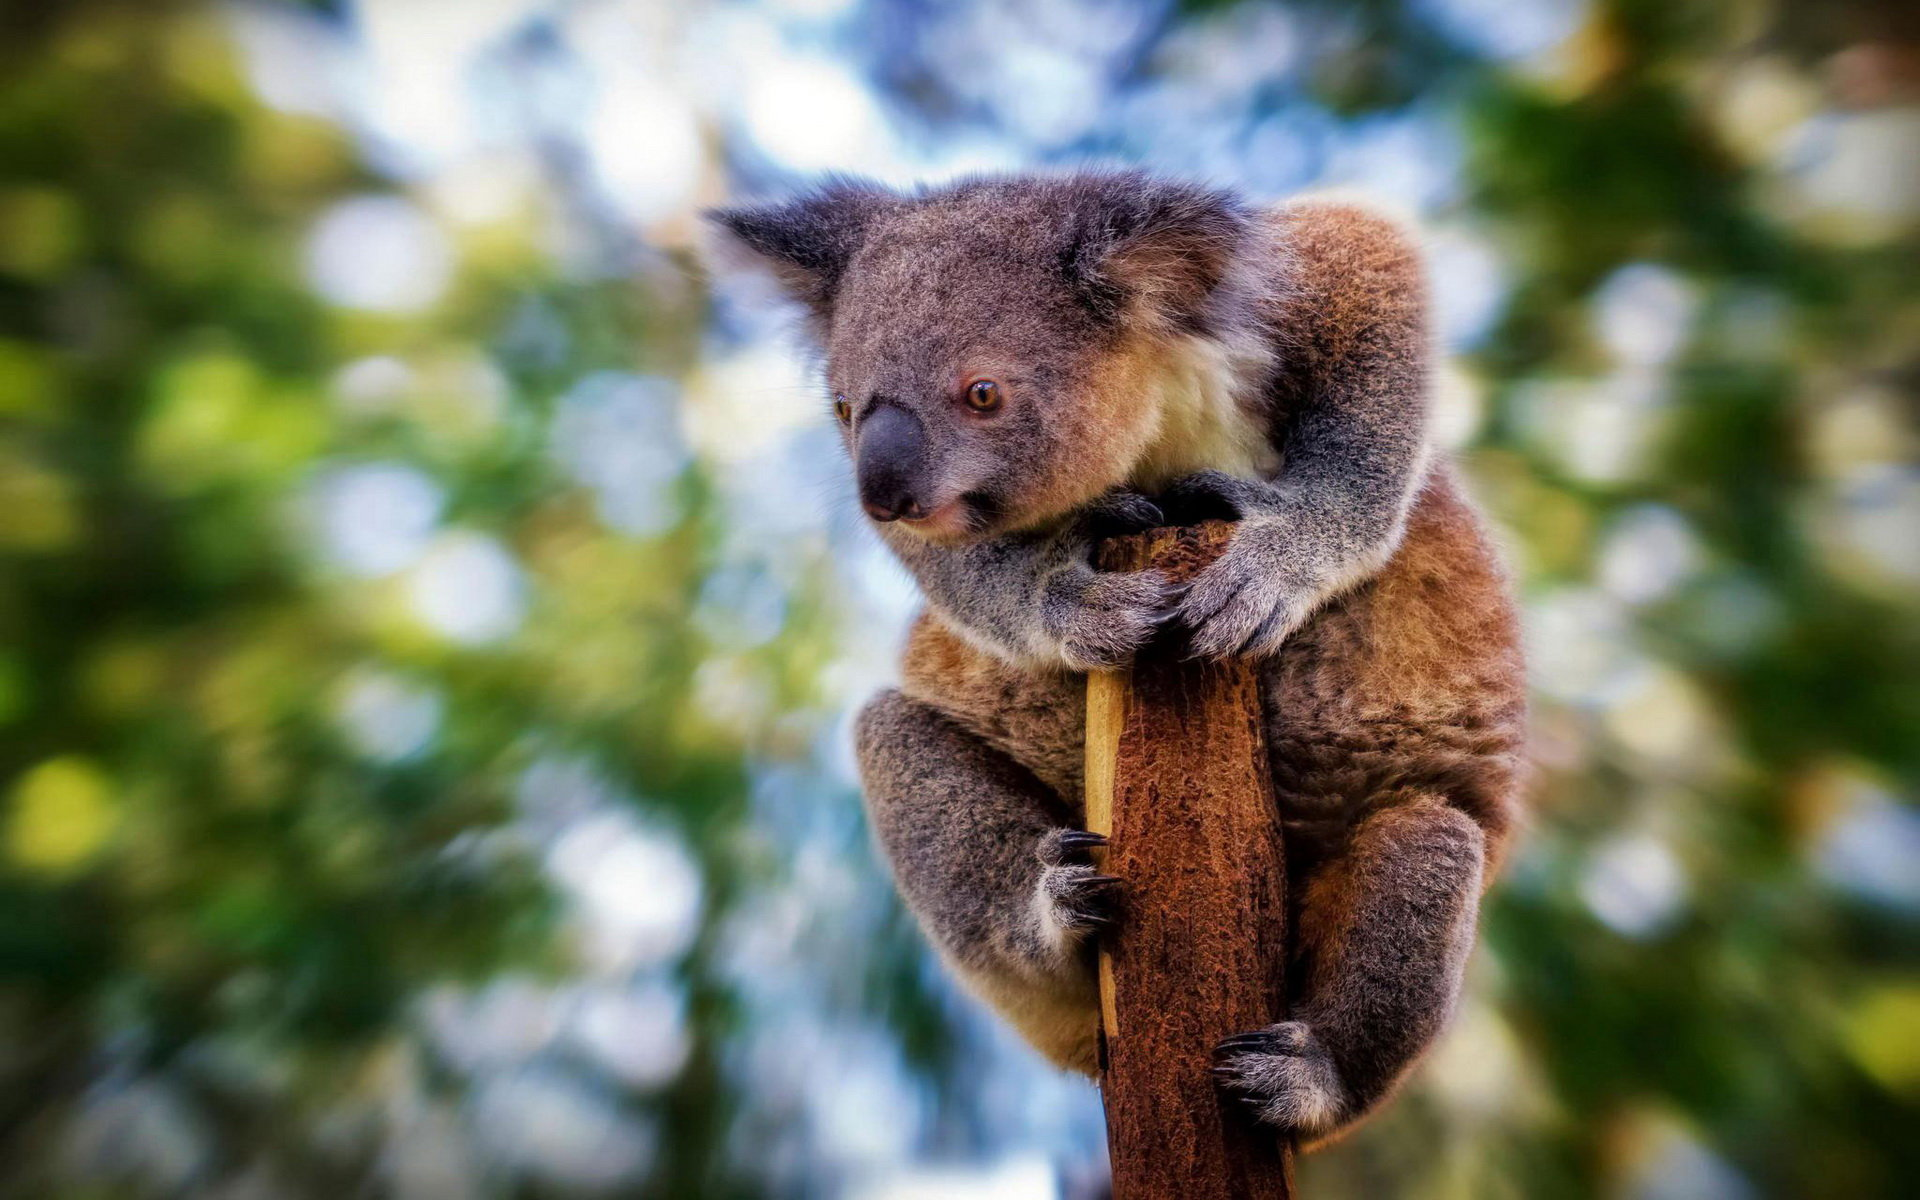 Download hd 1920x1200 Koala desktop background ID:74277 for free